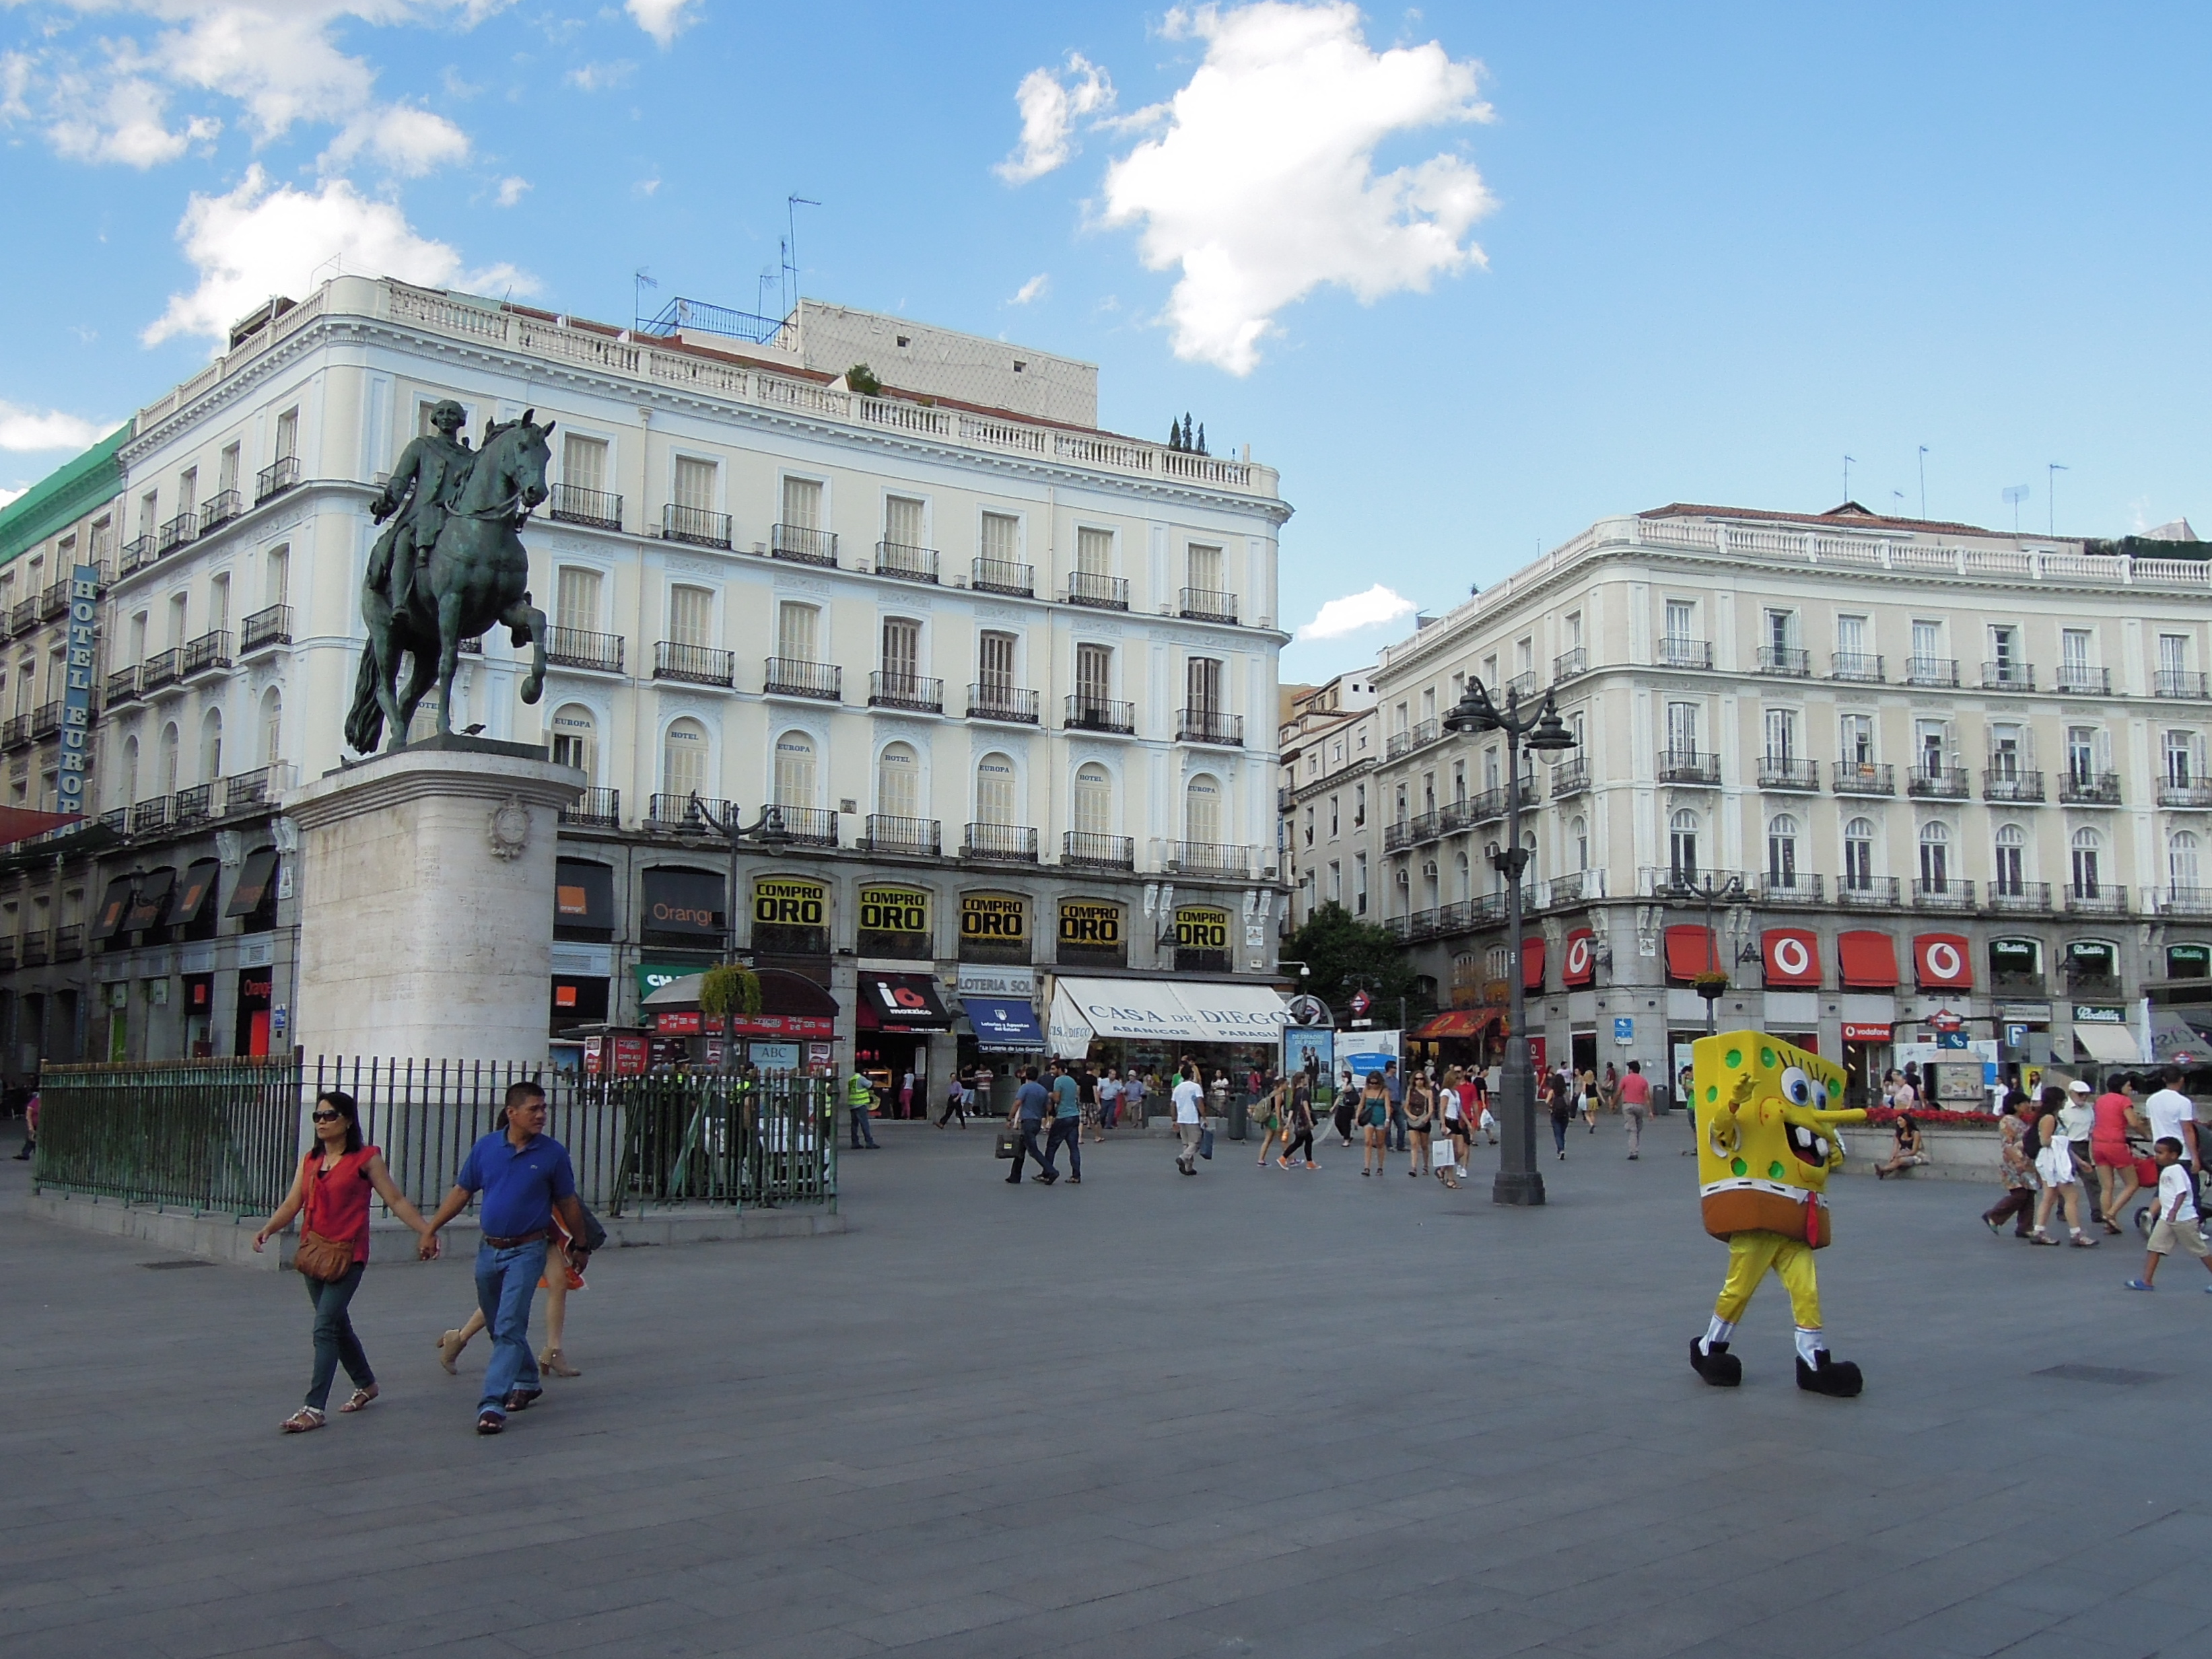 Plaza de la puerta del sol madrid including sponge bob for Plaza del sol madrid